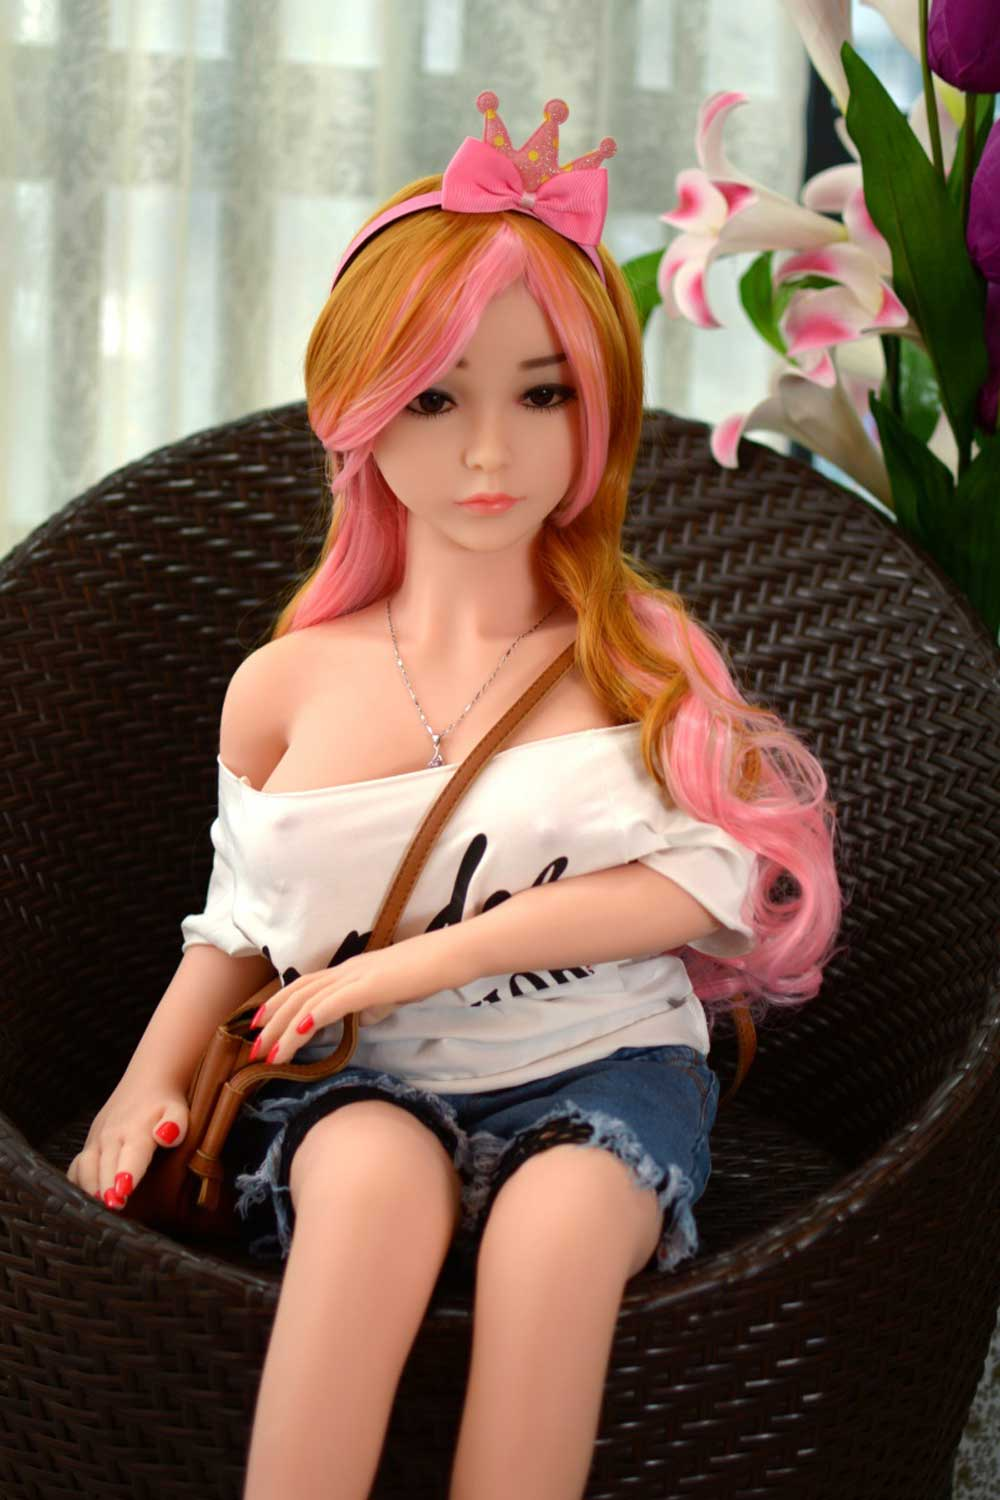 Mini sex doll with hands on the bag